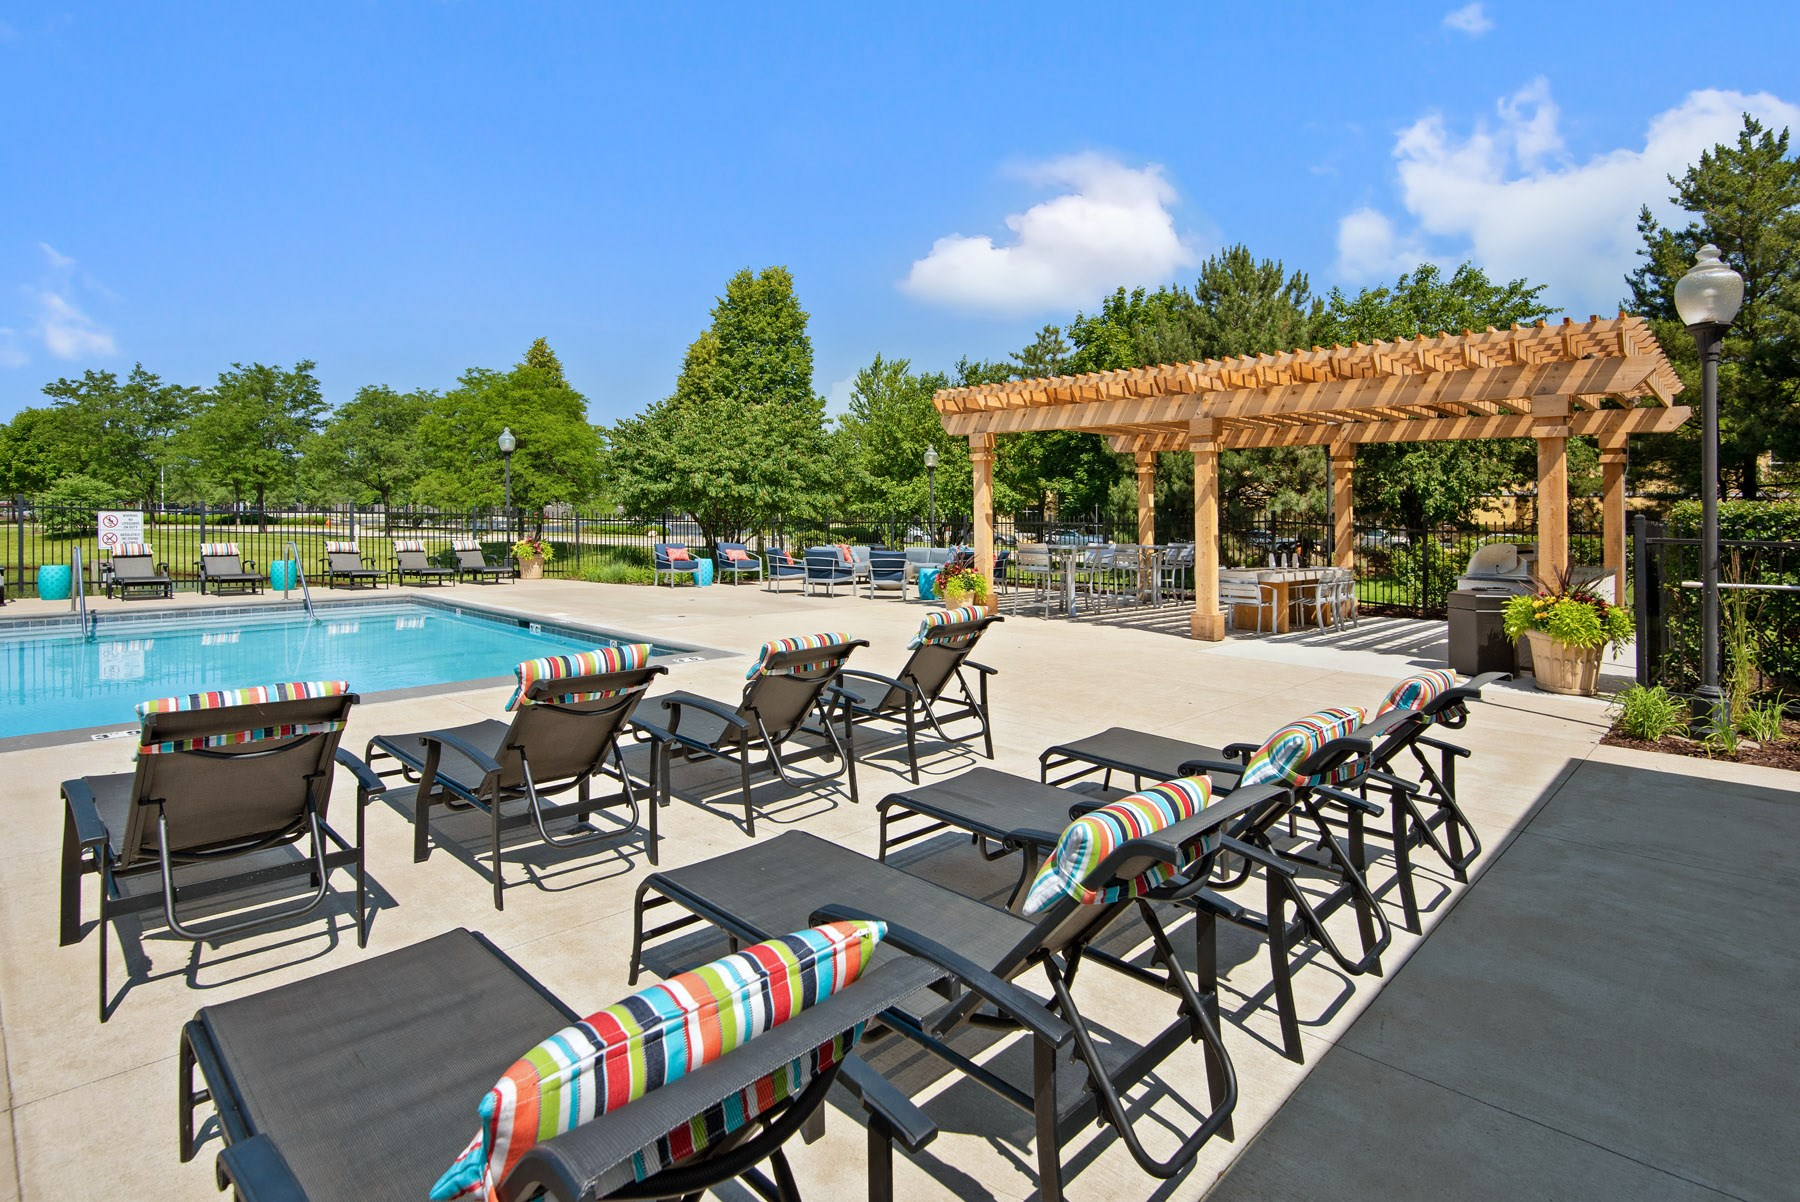 Outdoor swimming pool with poolside lounge chairs